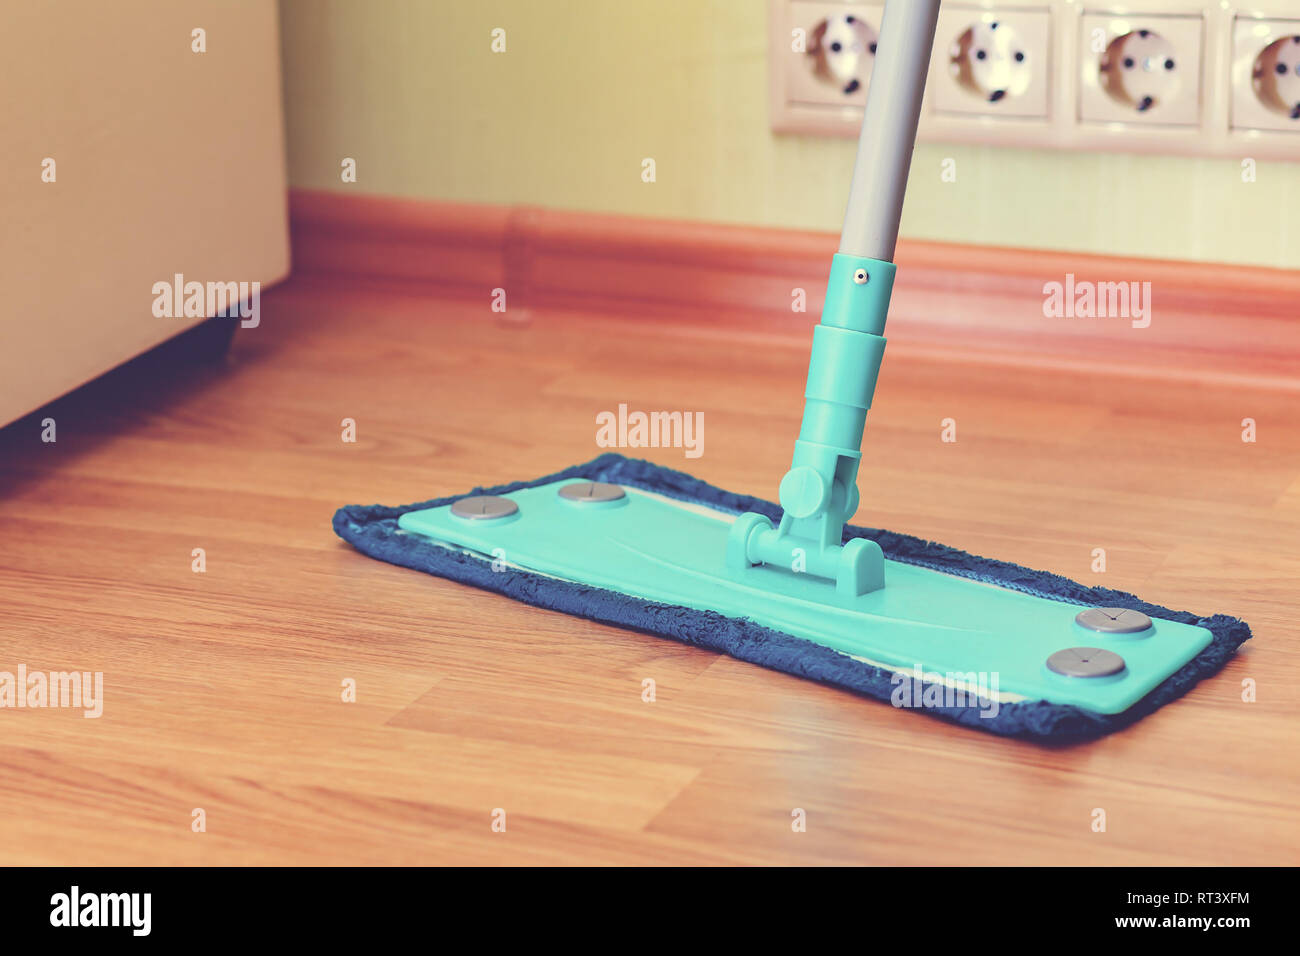 Blue mop on the floor of brown laminate - Stock Image